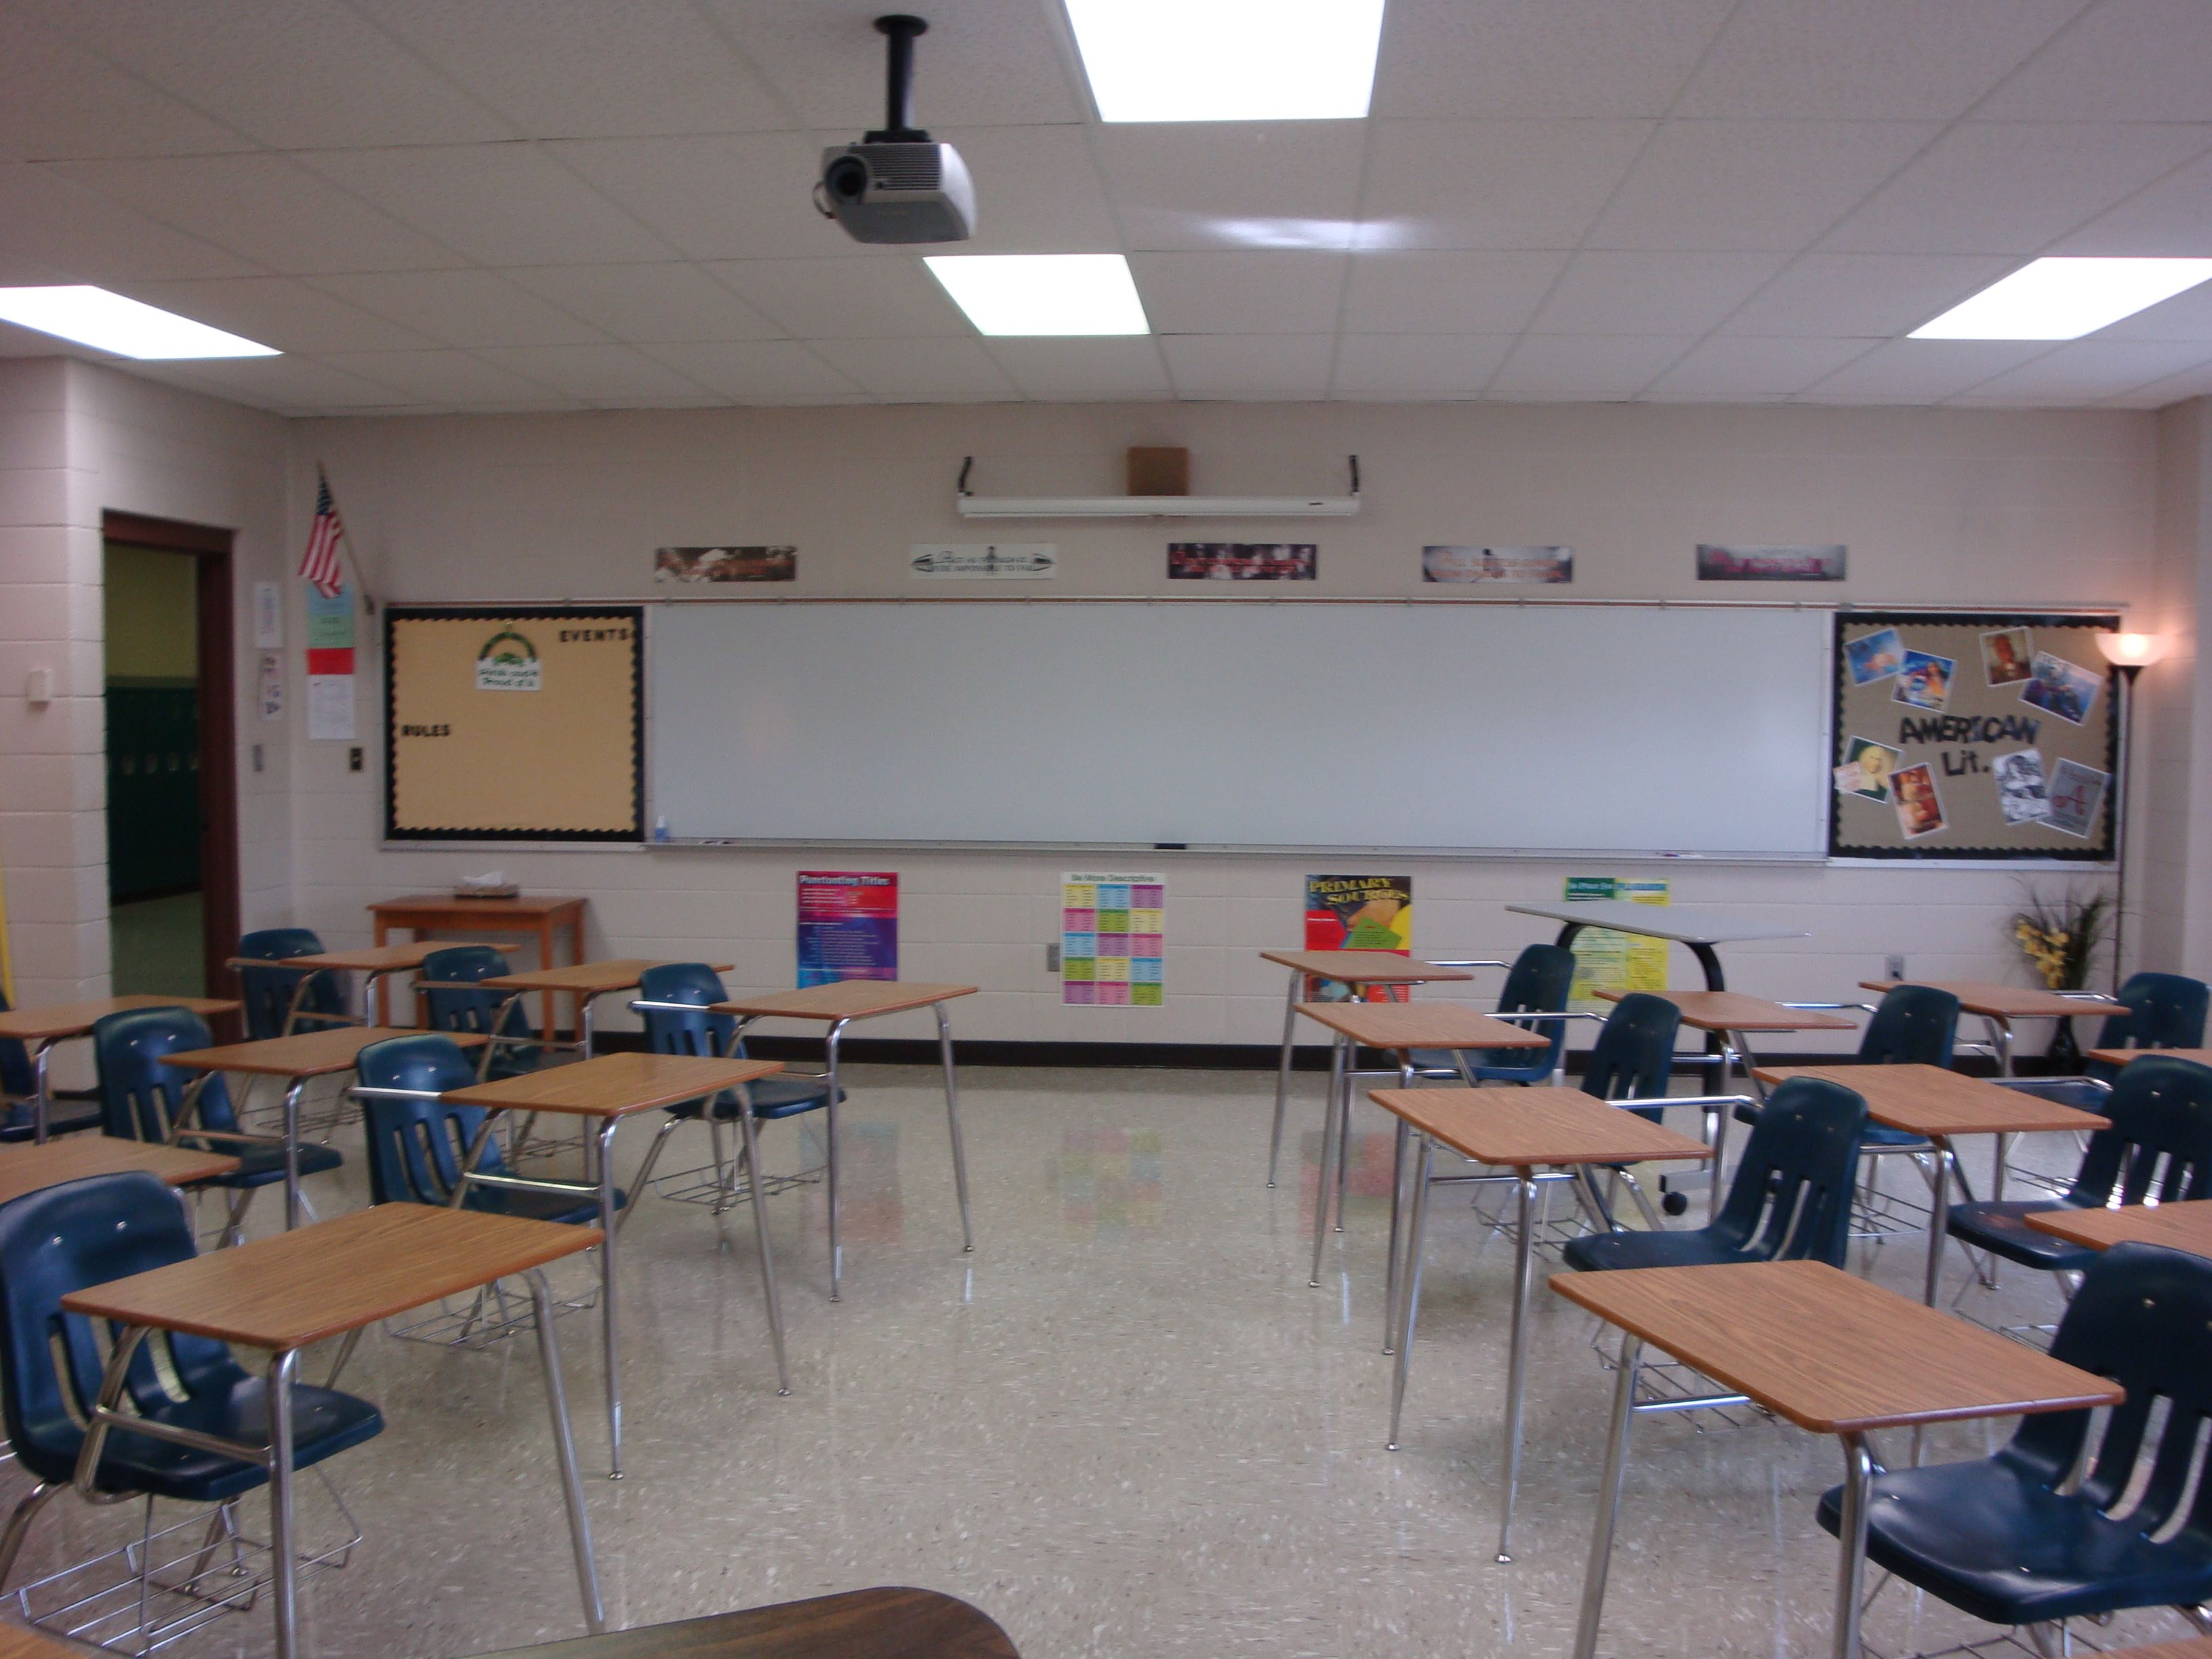 Classroom Seating Arrangement With Connected Desks   Google Search Amazing Design